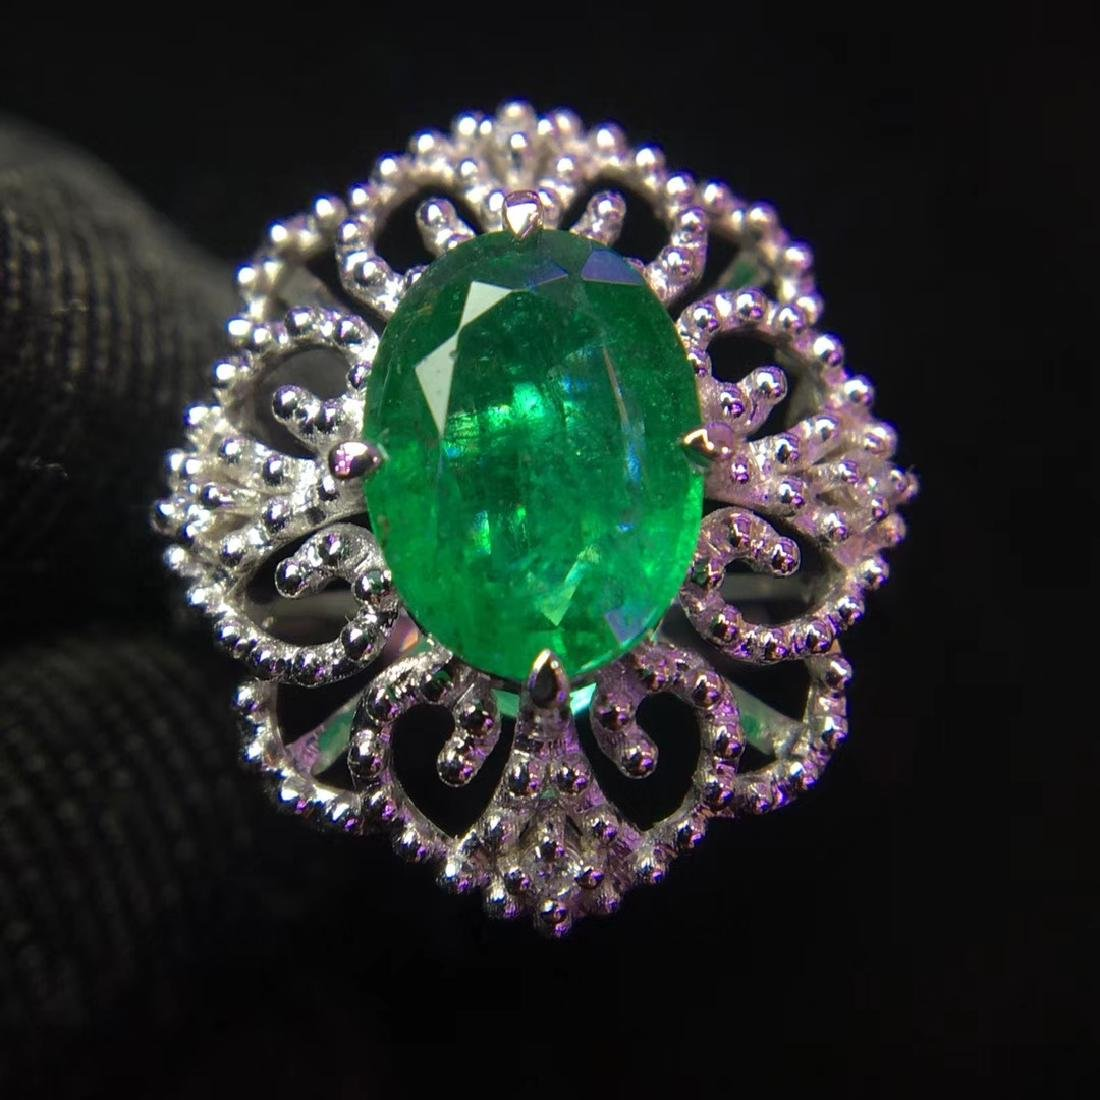 1.48ct Emerald Ring in 18kt White Gold